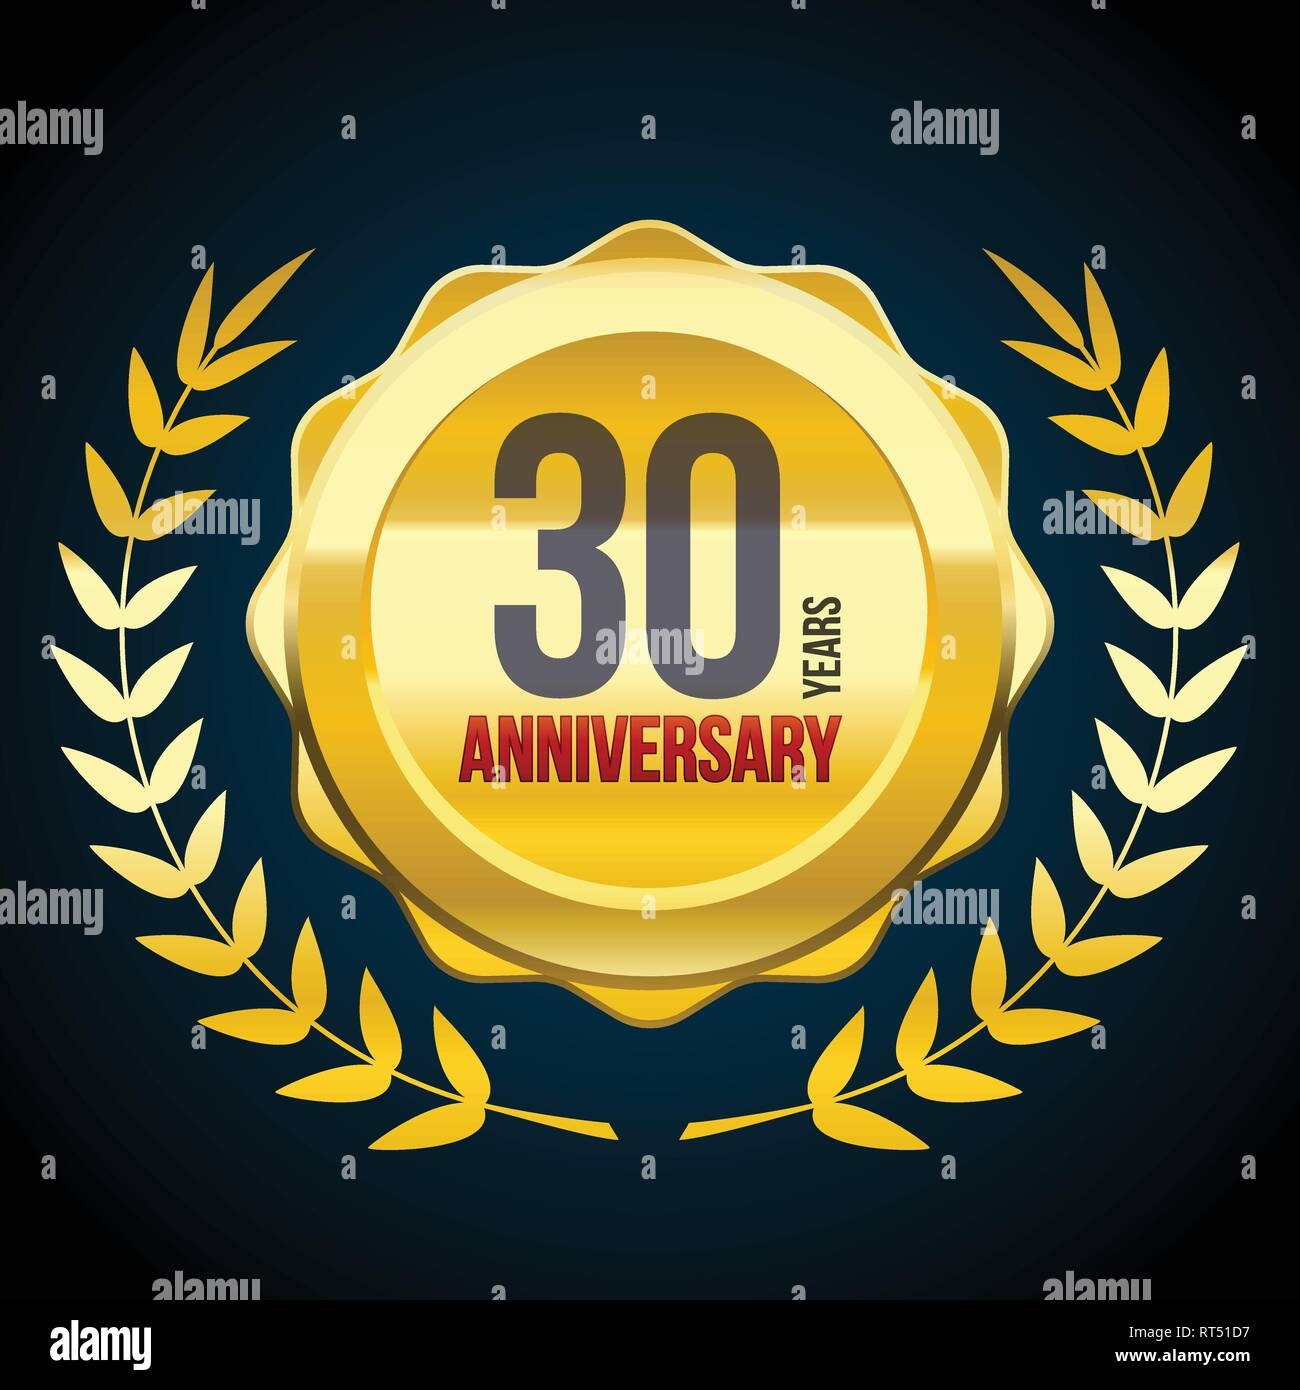 Anniversario Matrimonio 51 Anni.30 Years Anniversary Gold And Red Badge Logo Vector Illustration